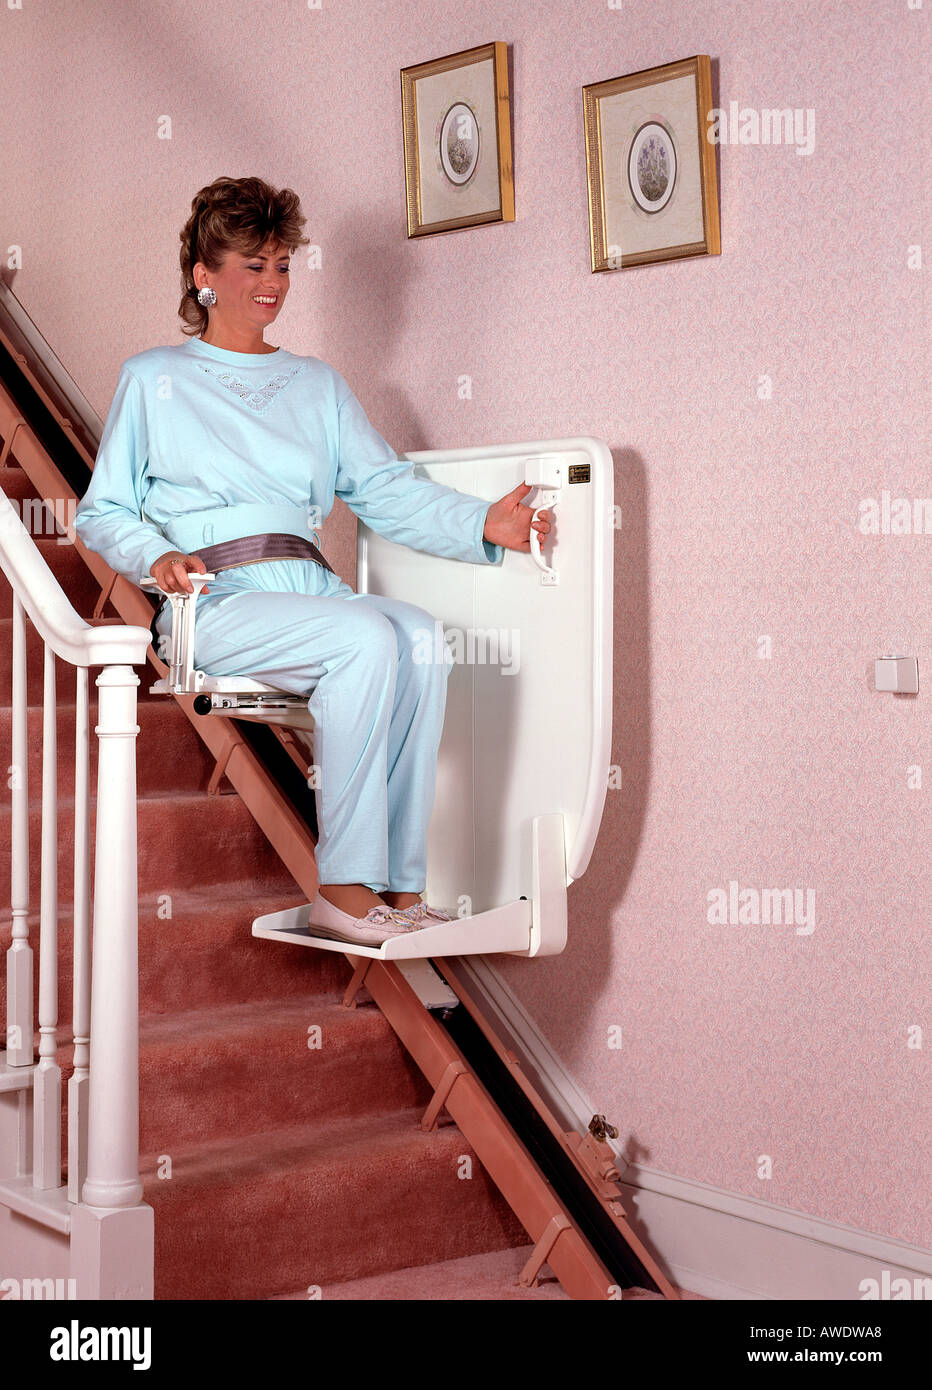 home chair elevator. stock photo - middle age aged woman female using stair chair lift elevator in home handicap copy space t